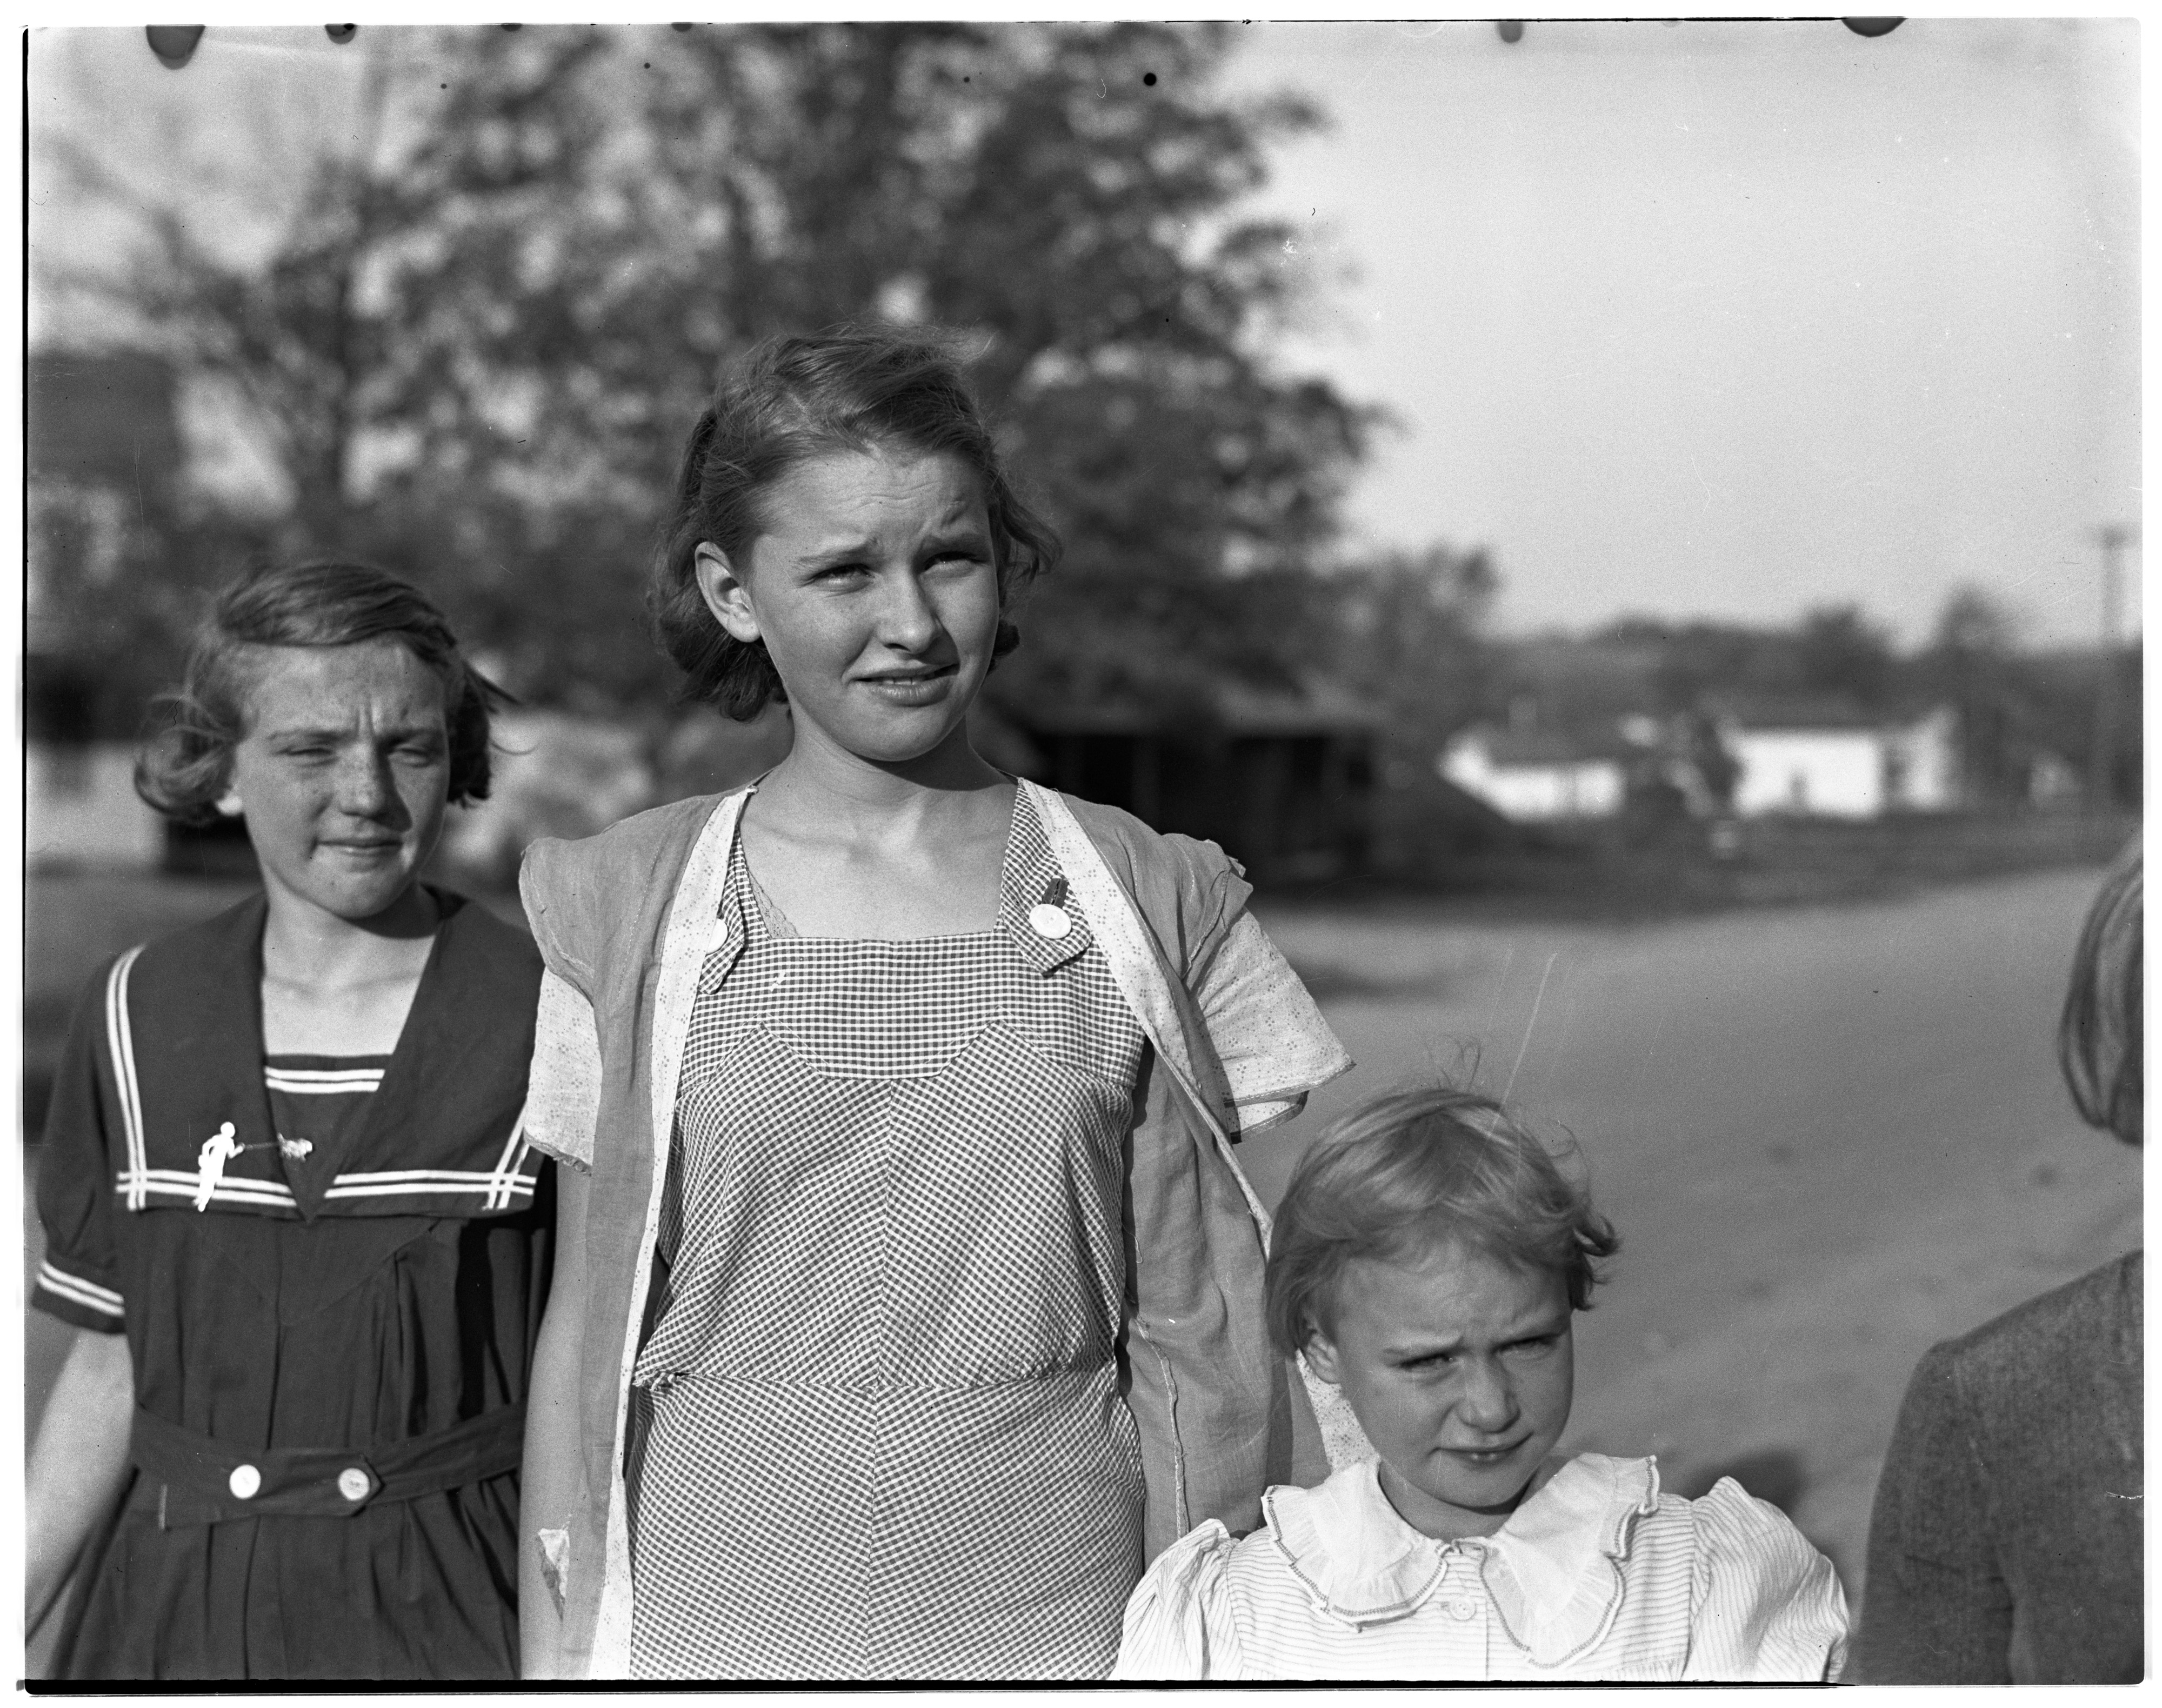 Girls in Dexter, Michigan, 1937 image